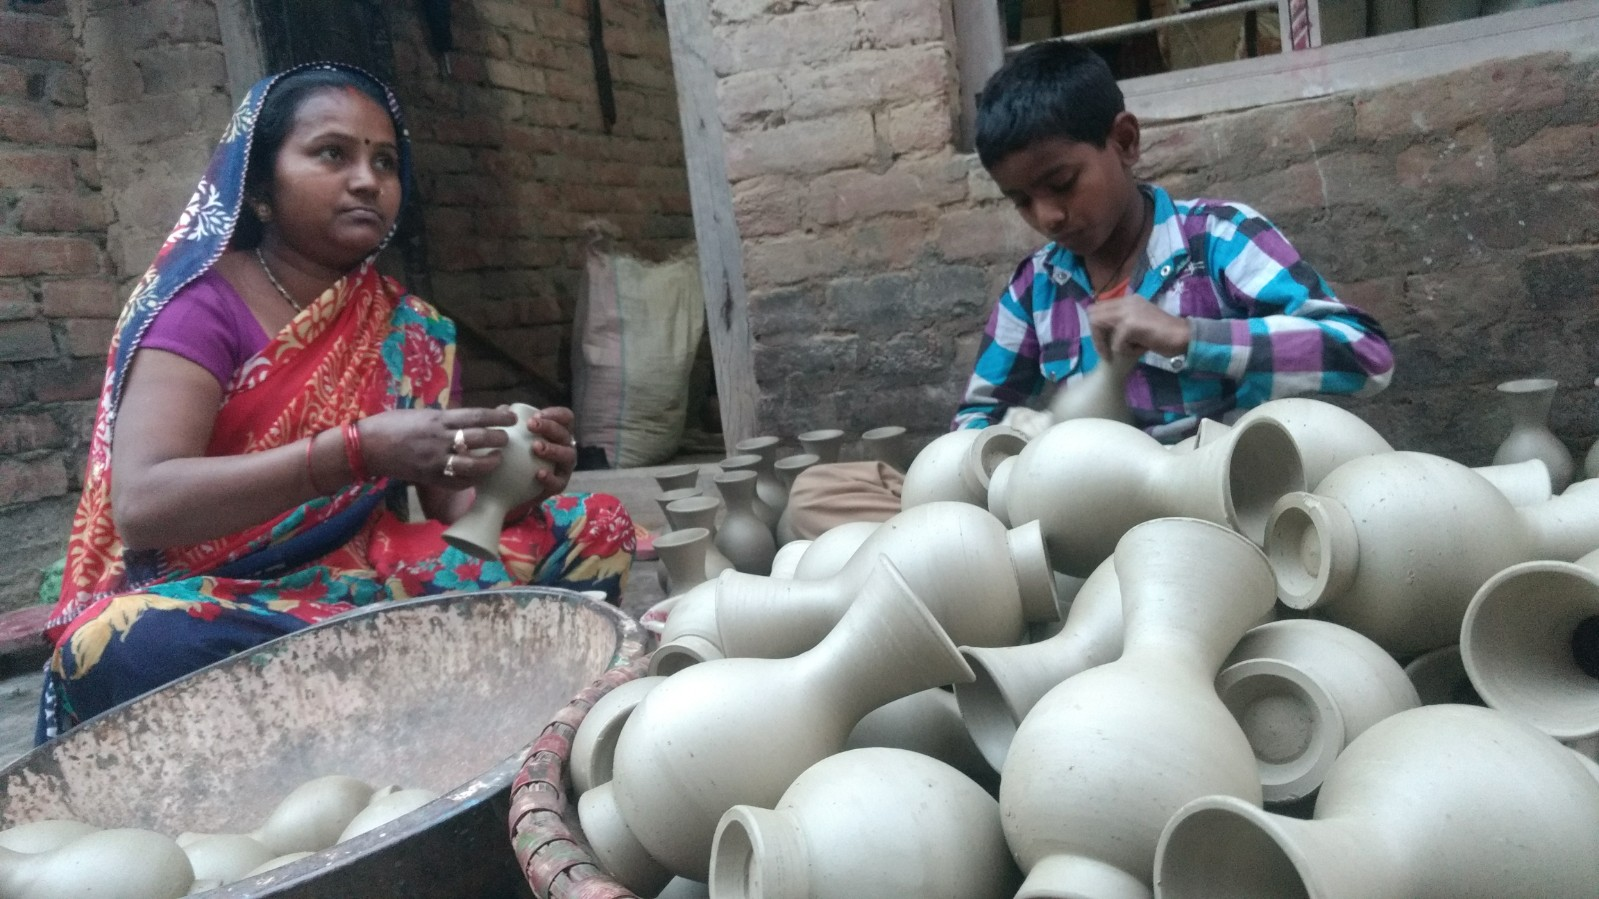 A woman and her son polish the clay vases in Nizamabad. Credit: Titash Sen